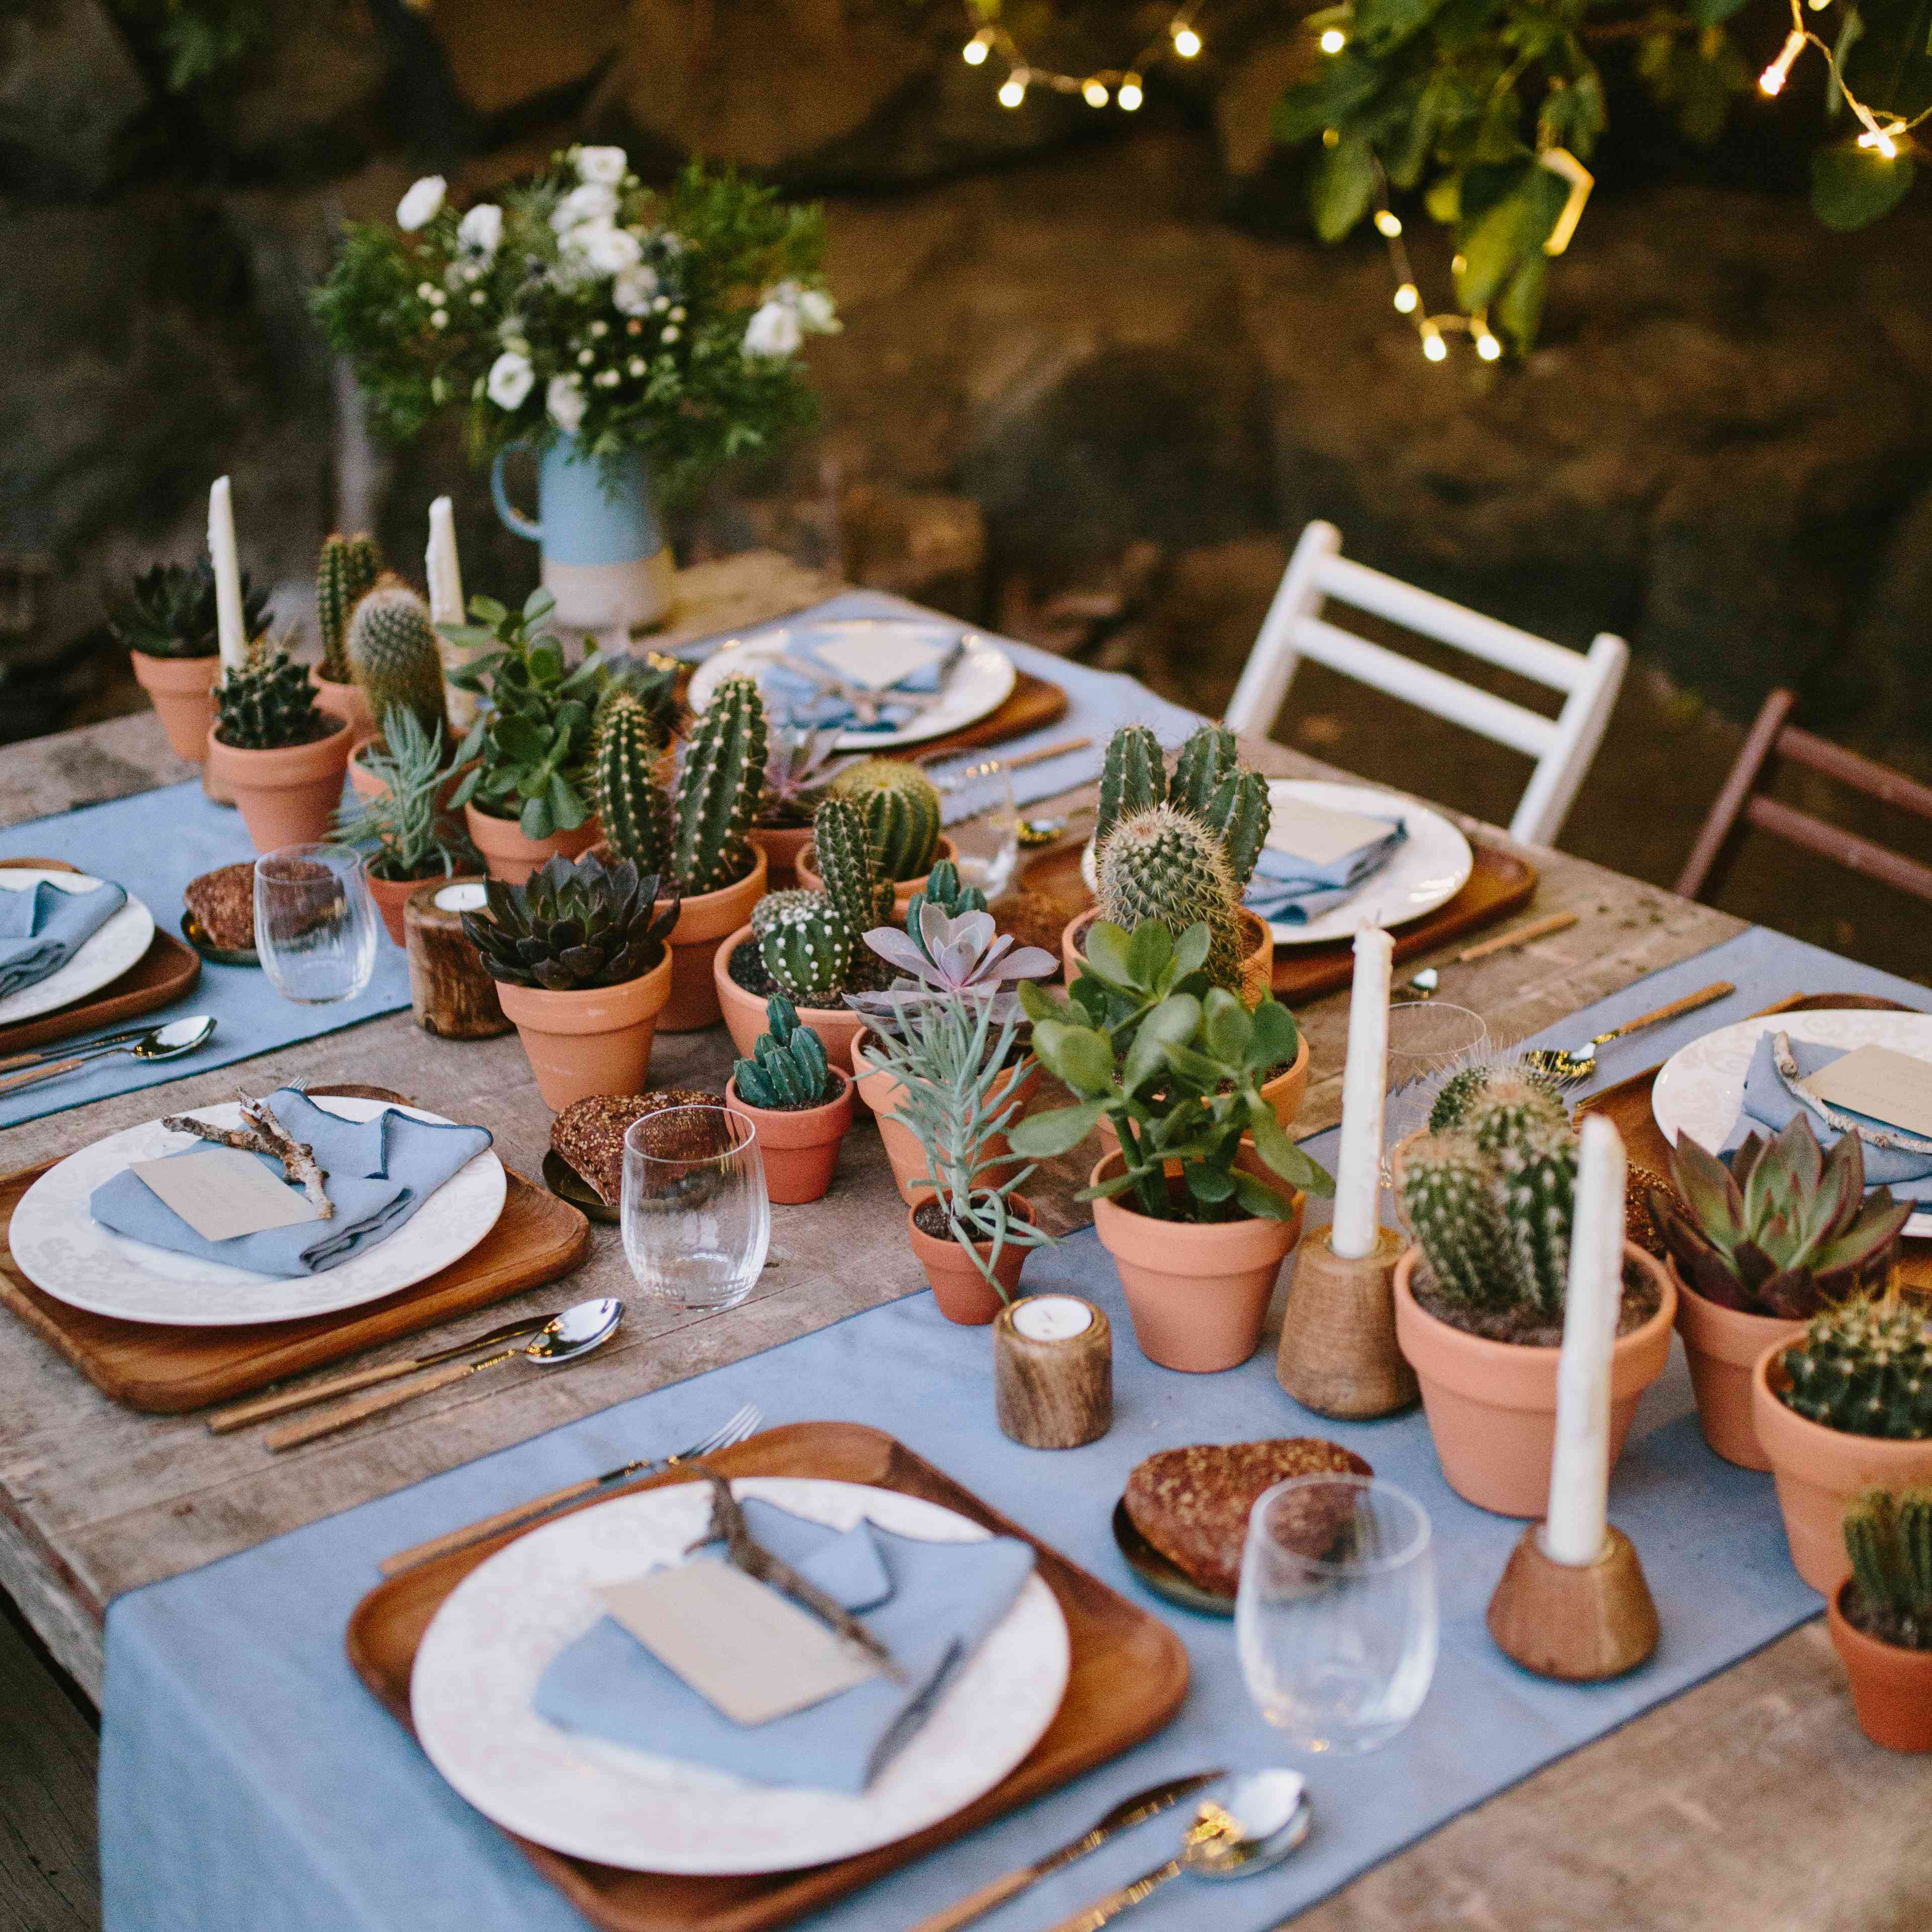 Potted Cactus Plants on Table